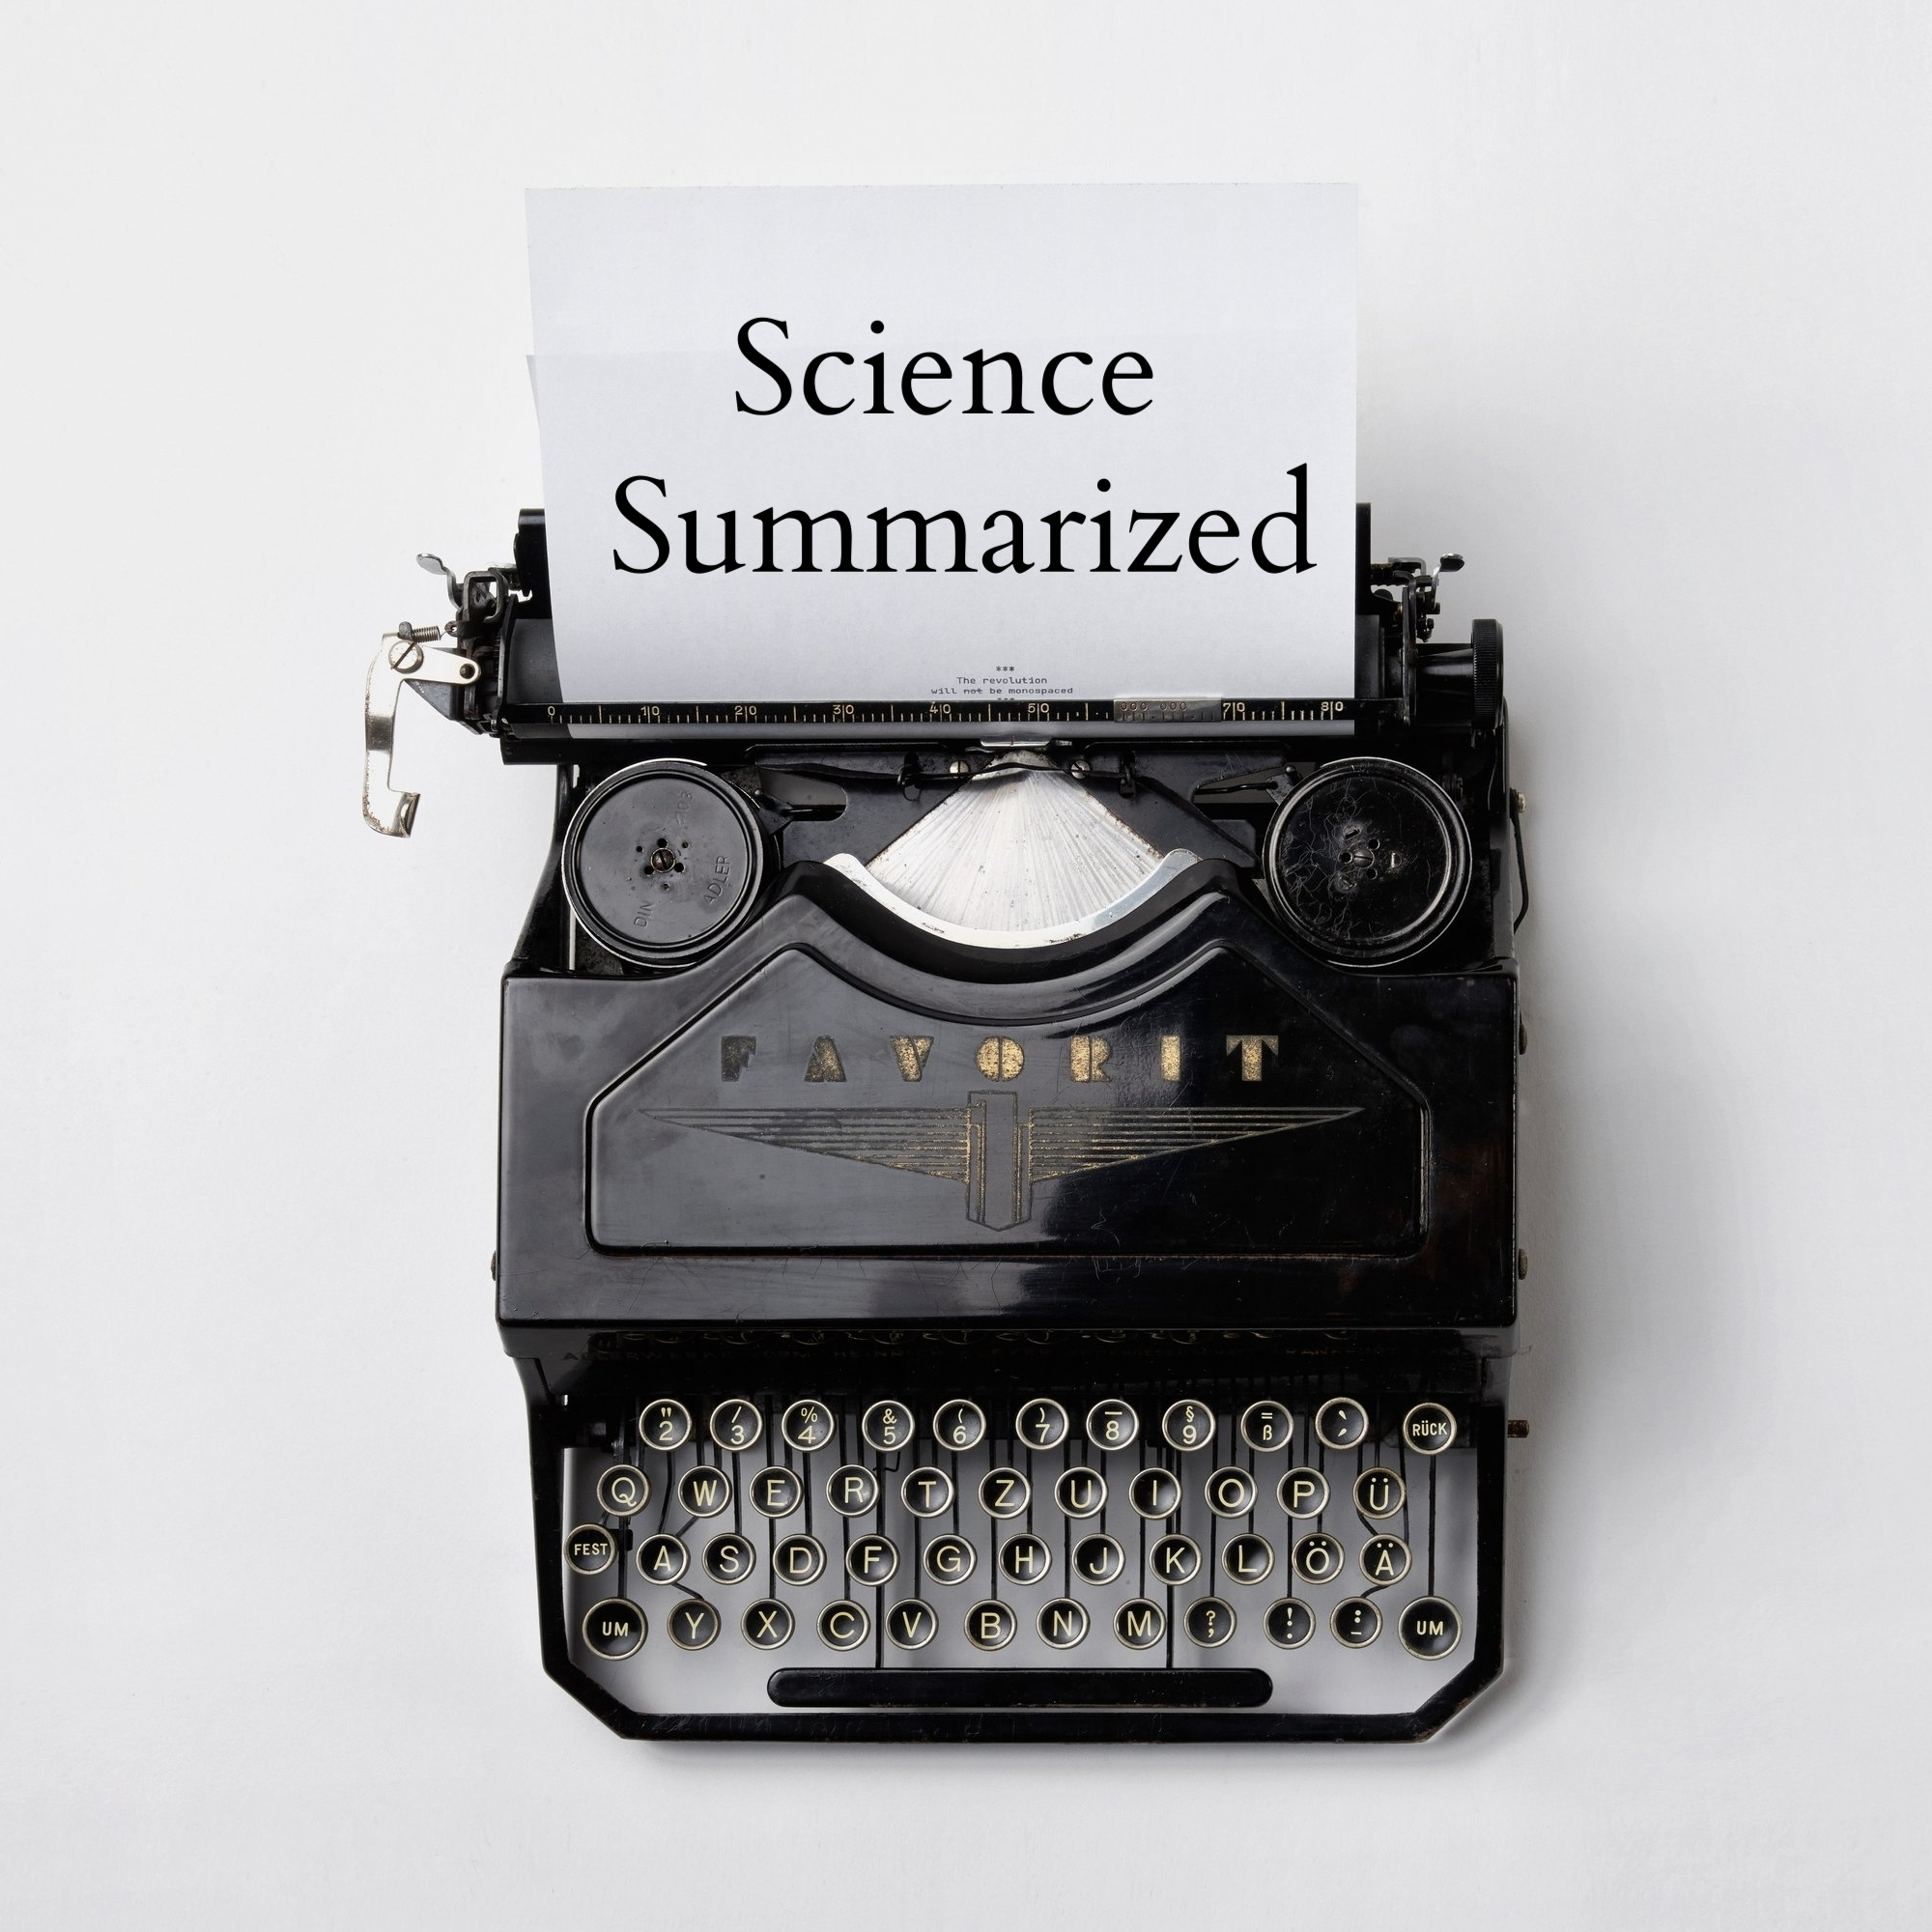 TL;DR - If you're interested in science and how it applies to your life, but don't have much time to read into it, this blog is for you.